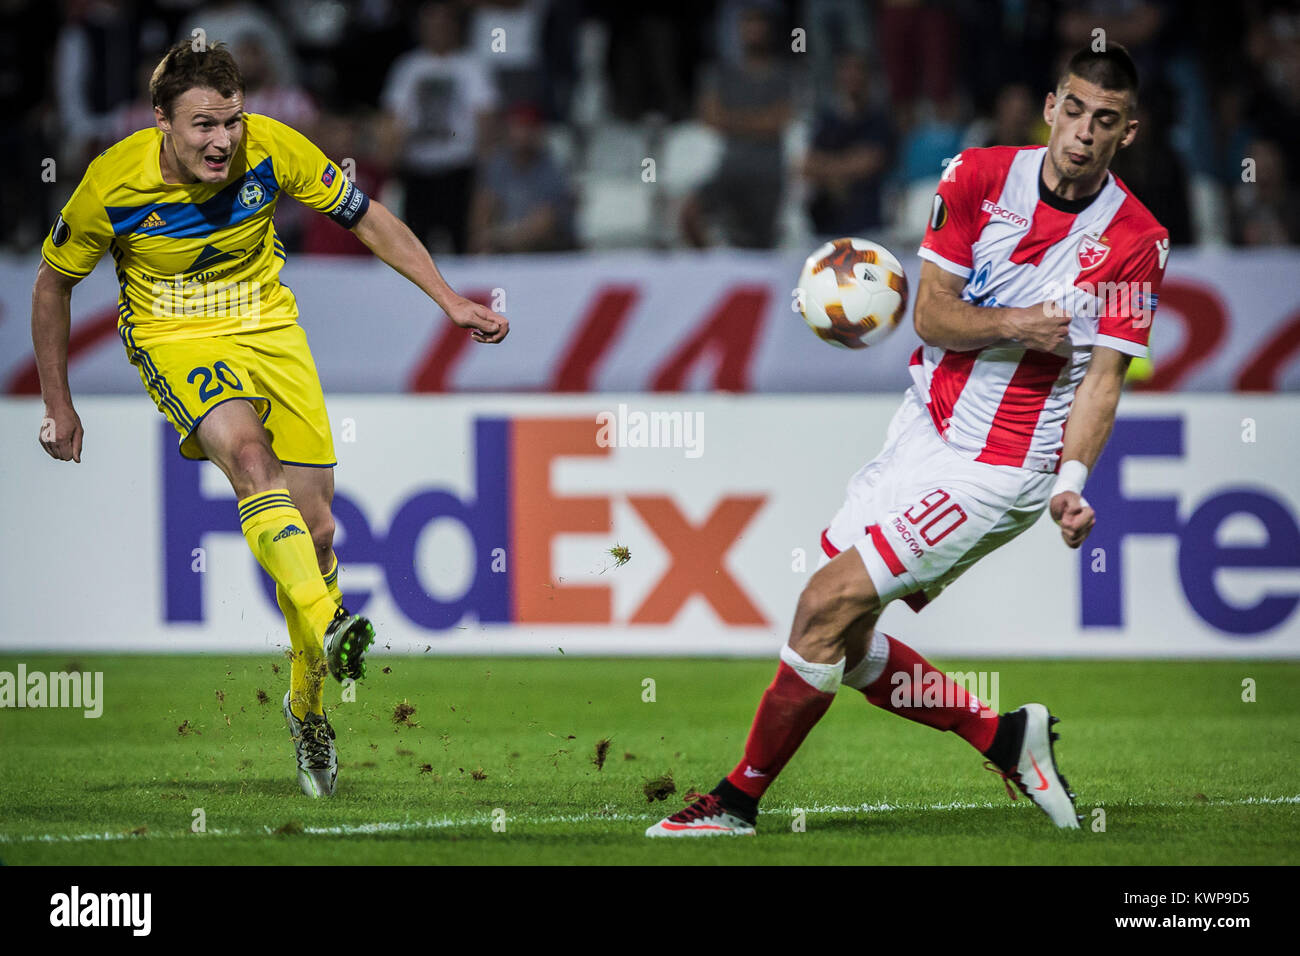 Forward Vitali Rodionov of FC BATE Borisov shoots on the goal past the attamepted block from Vujadin Savić - Stock Image